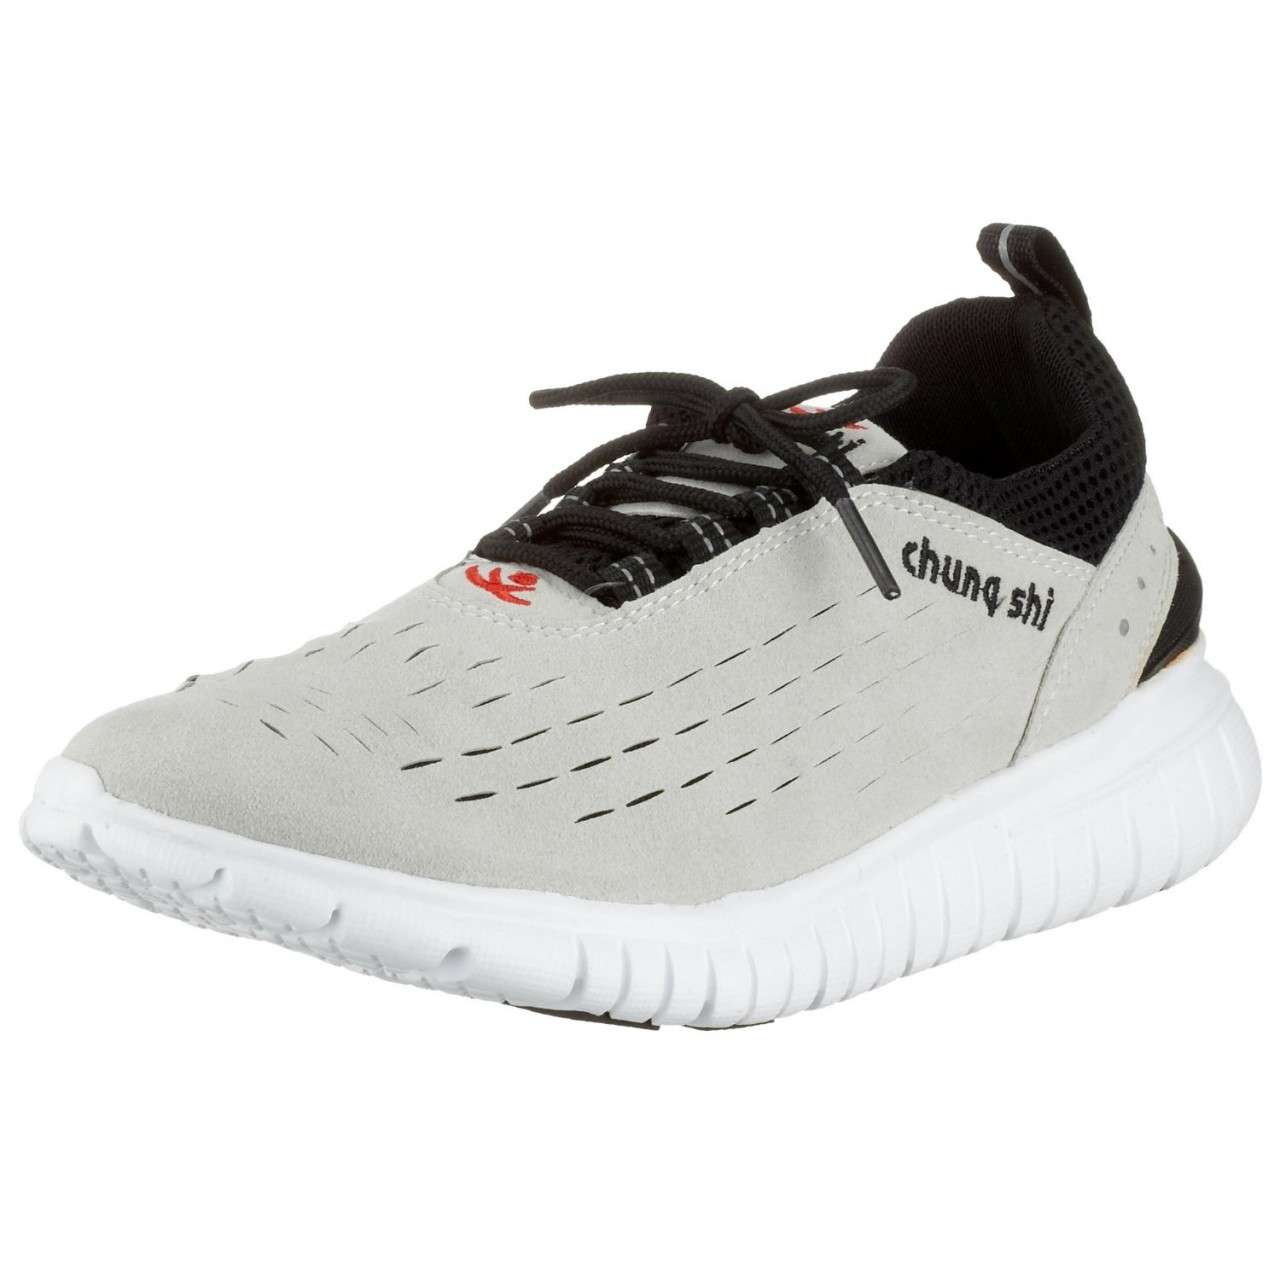 Online shopping for Clothing, Shoes & Jewelry from a great selection of Fashion Sneakers, Athletic, Sandals, Loafers & Slip-Ons, Footwear & more at everyday low prices.